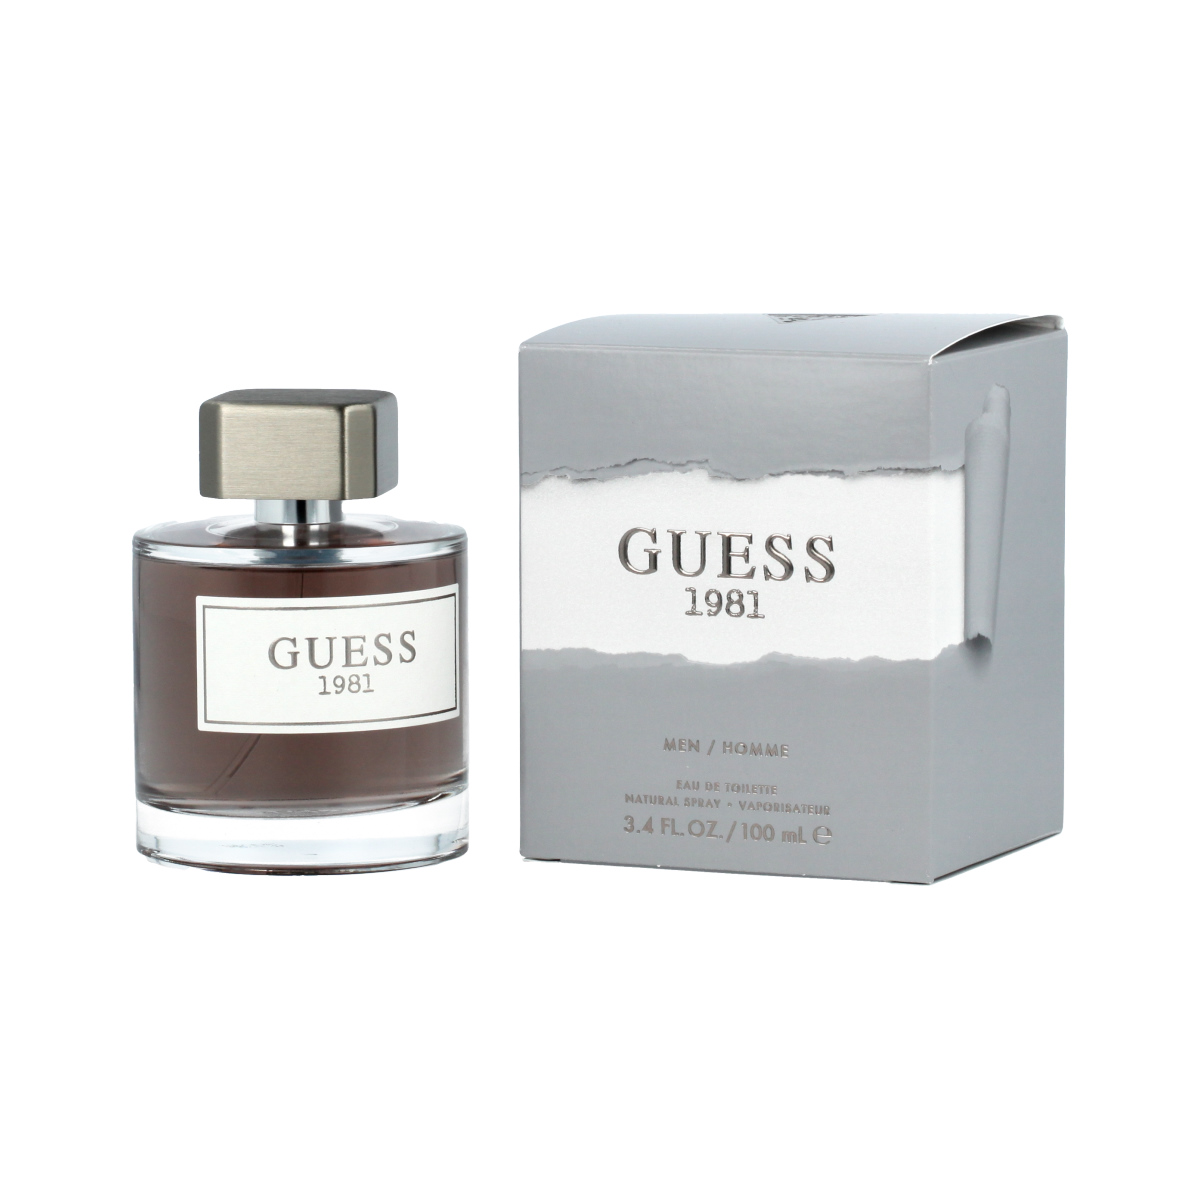 Guess Guess 1981 for Men Eau De Toilette 100 ml (man) 91744